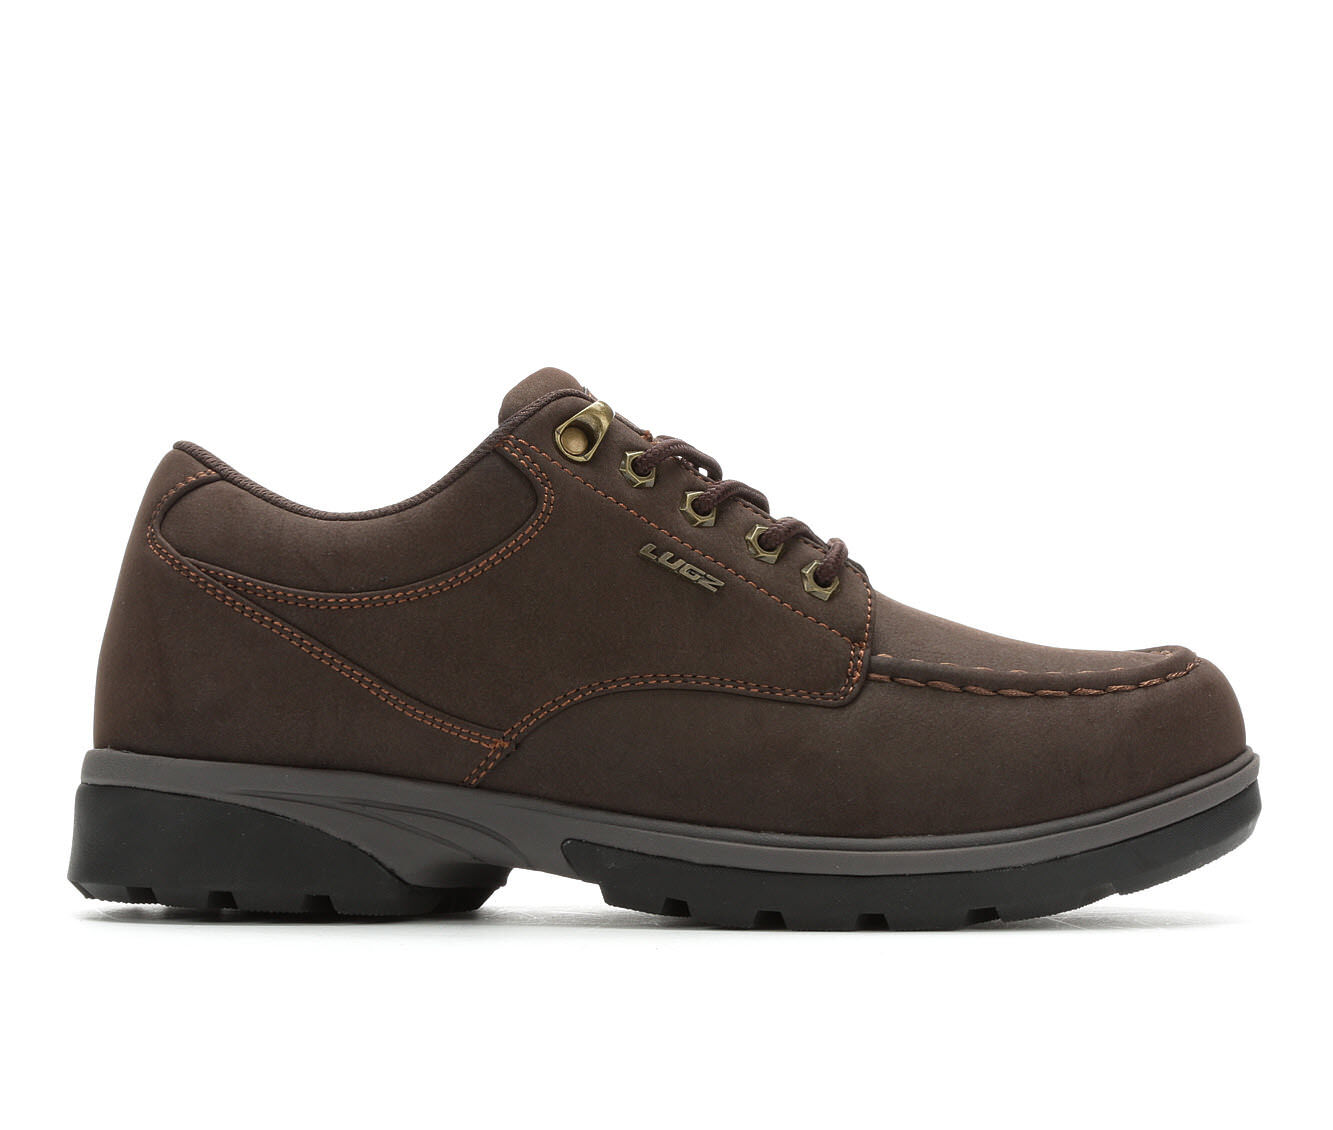 Men's Lugz Stack Lo Slip-Resistant Casual Boots Dk Brown/Br/Blk